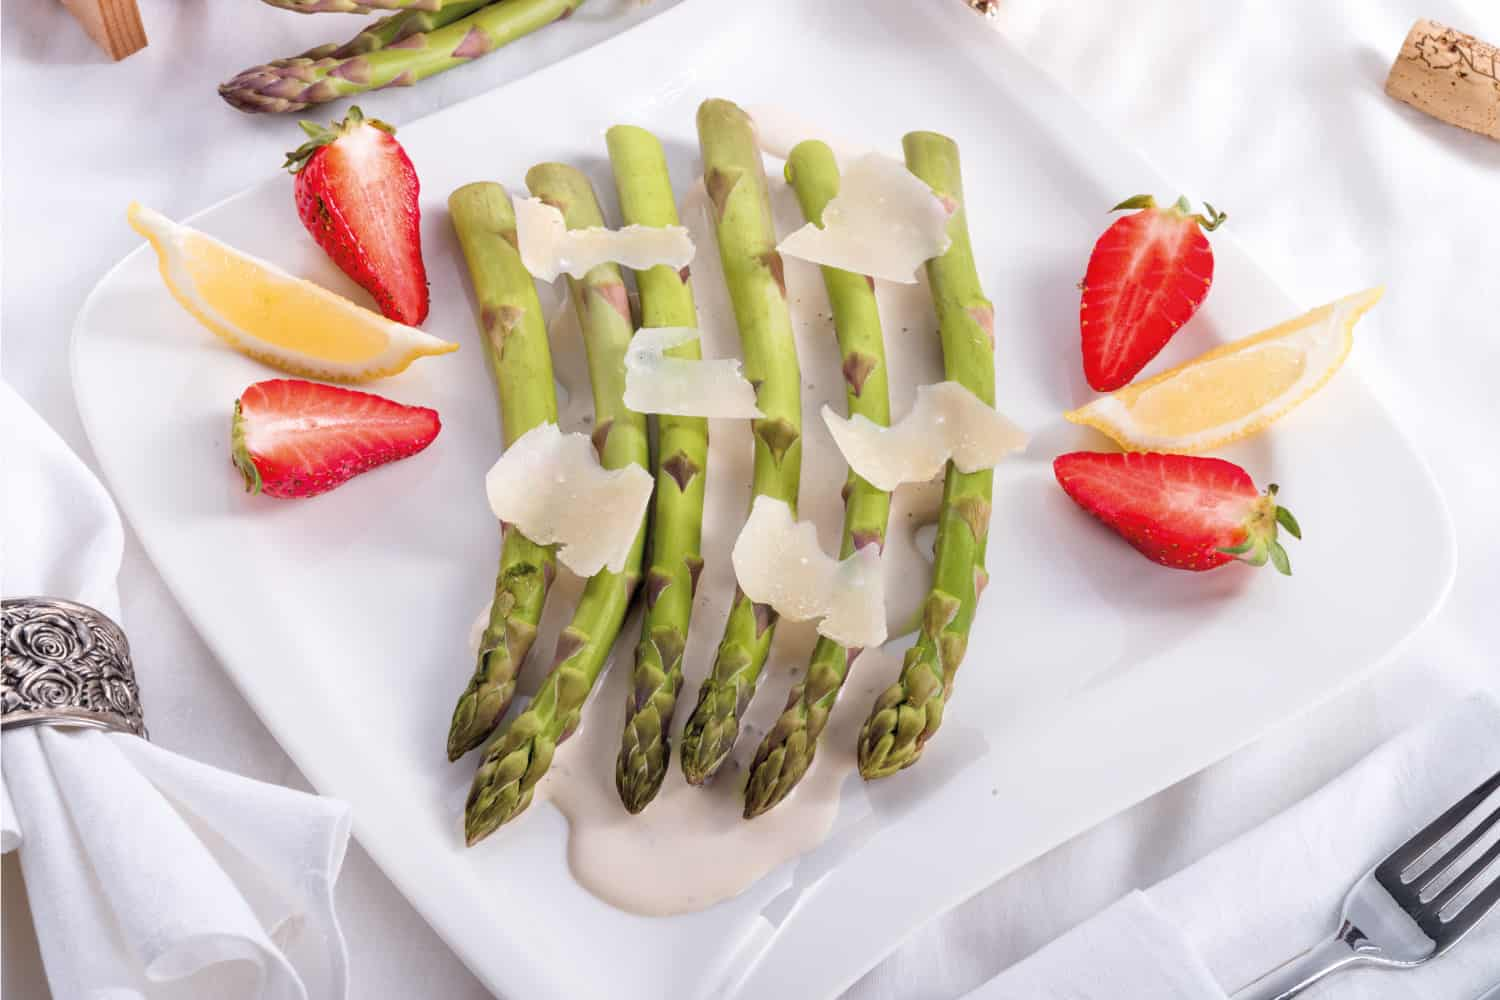 Blanched asparagus garnished with sliced strawberry and lemon